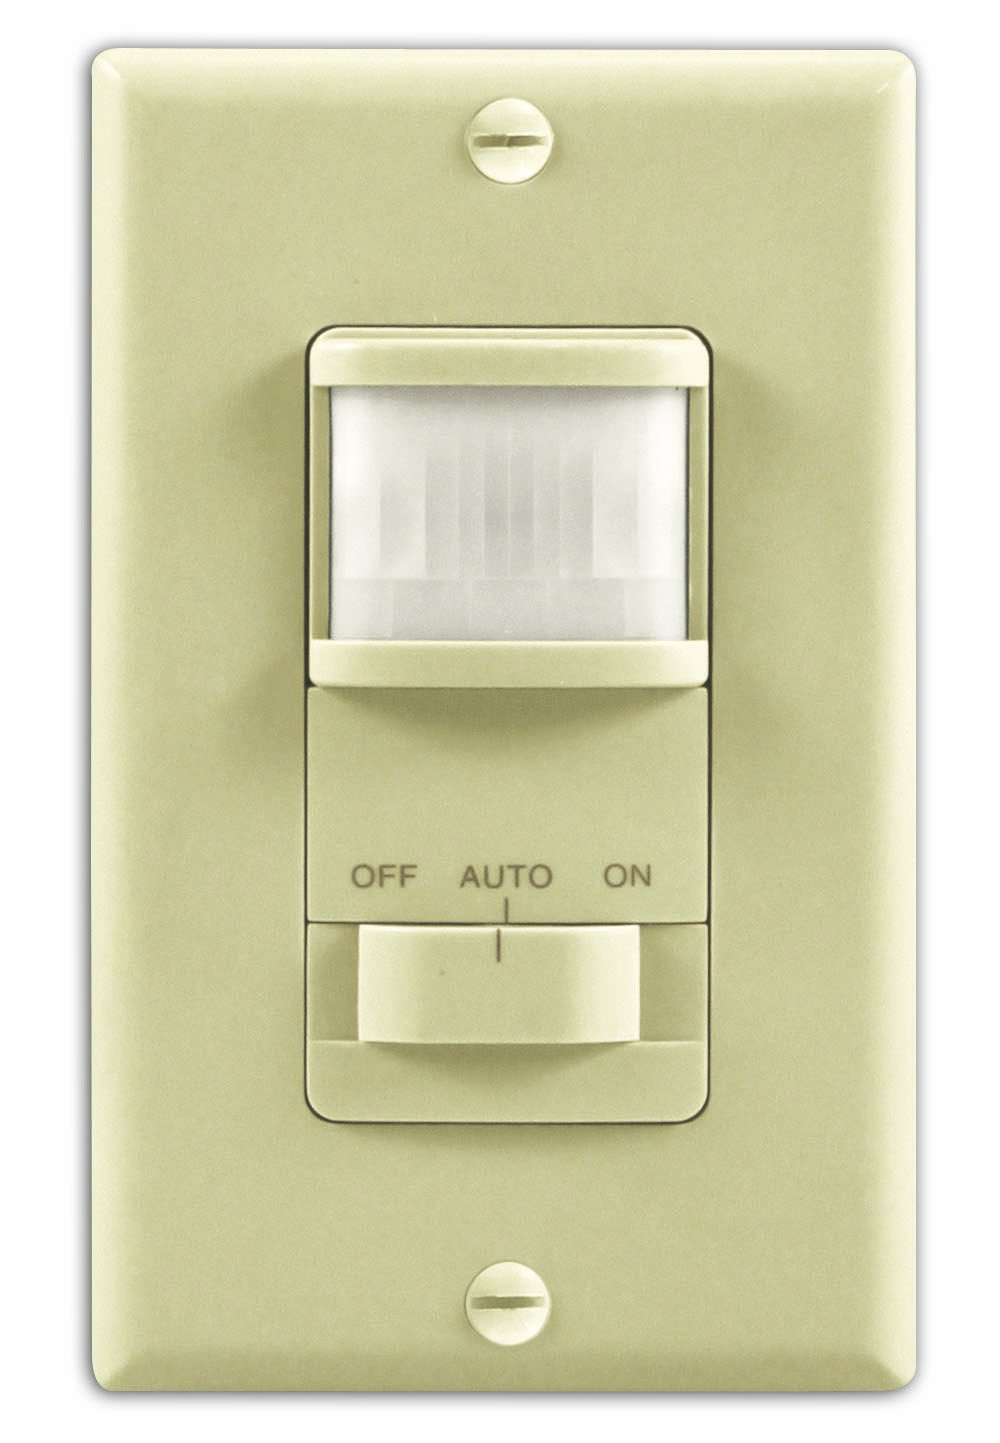 Heath Zenith Sl 6117 Iv Motion Activated Wall Light Switch Ivory Sensor Wiring Diagram